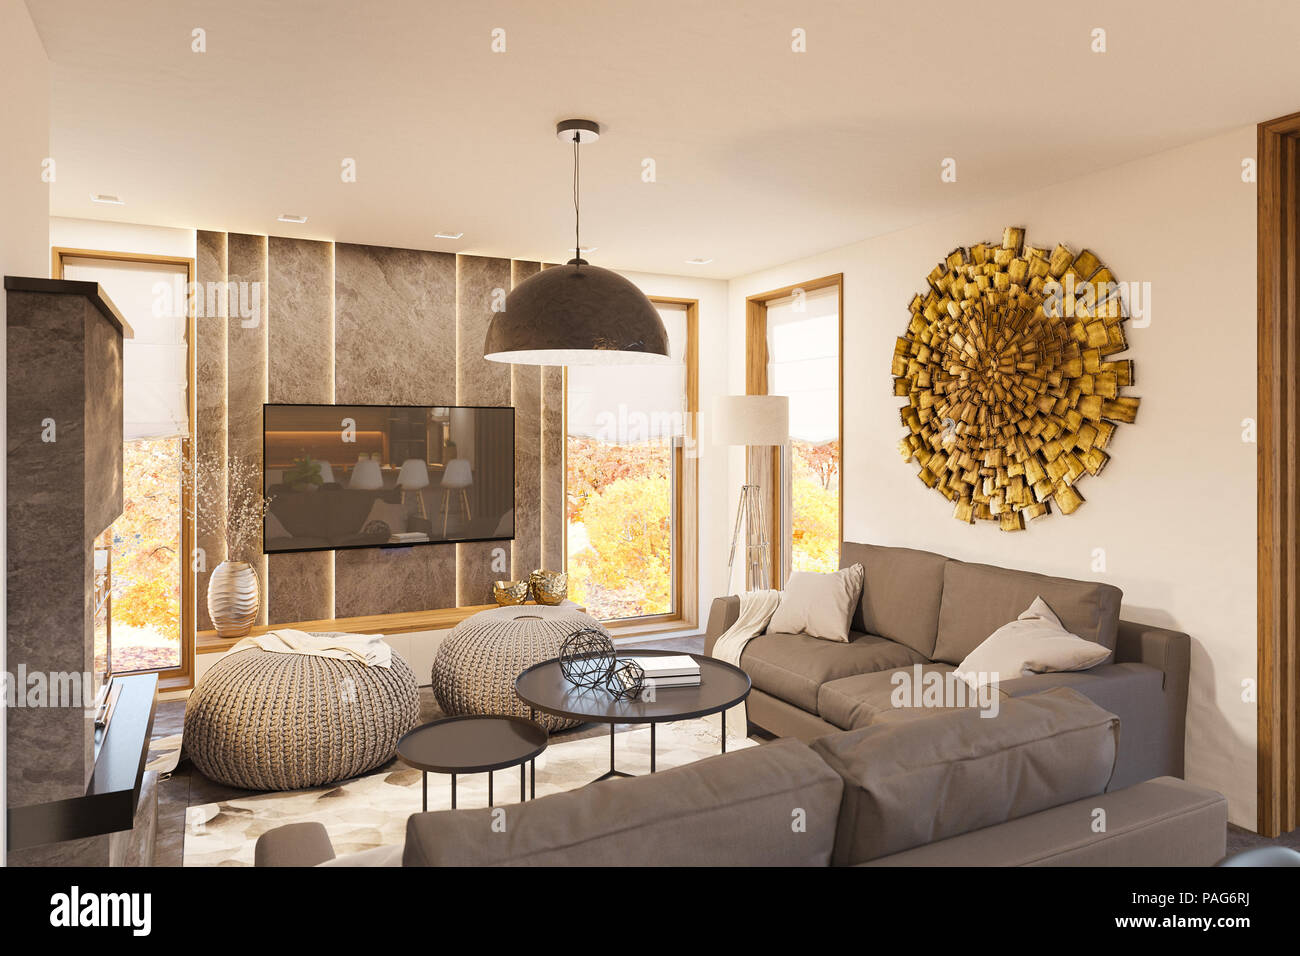 3d Render Modern Living Room Interior Design With Fireplace Stock